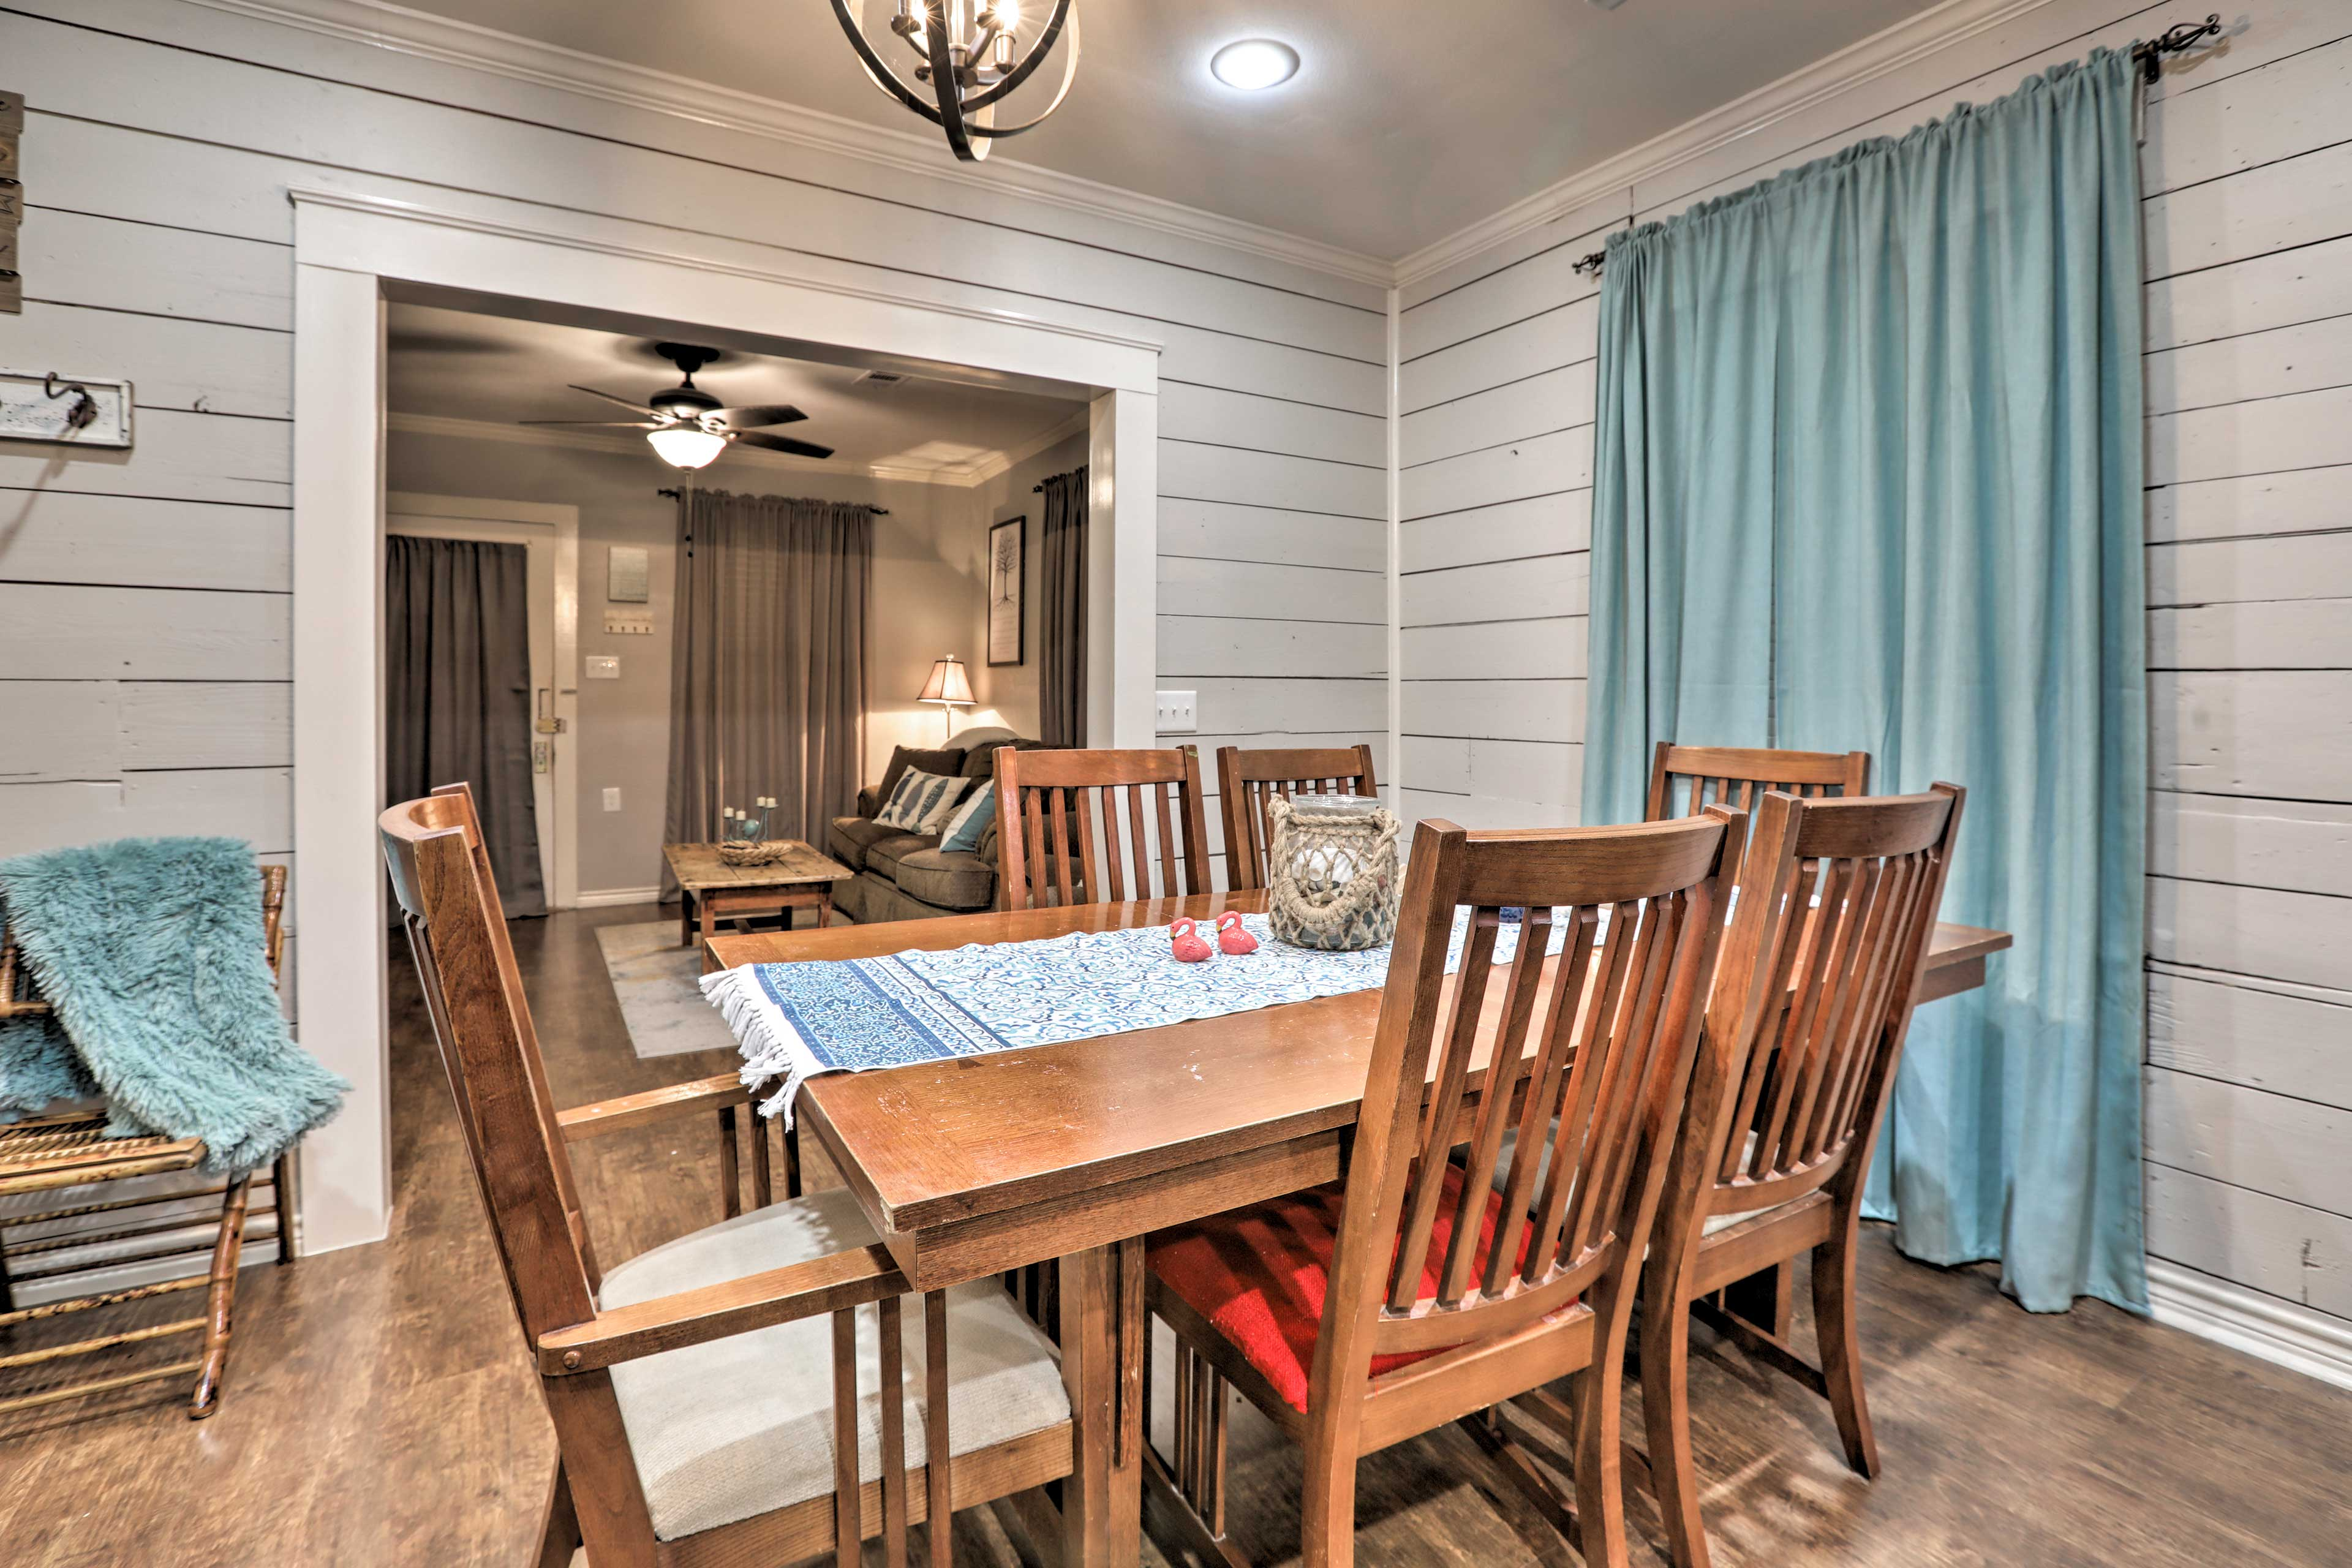 Enjoy homemade feasts at the 6-person dining table.